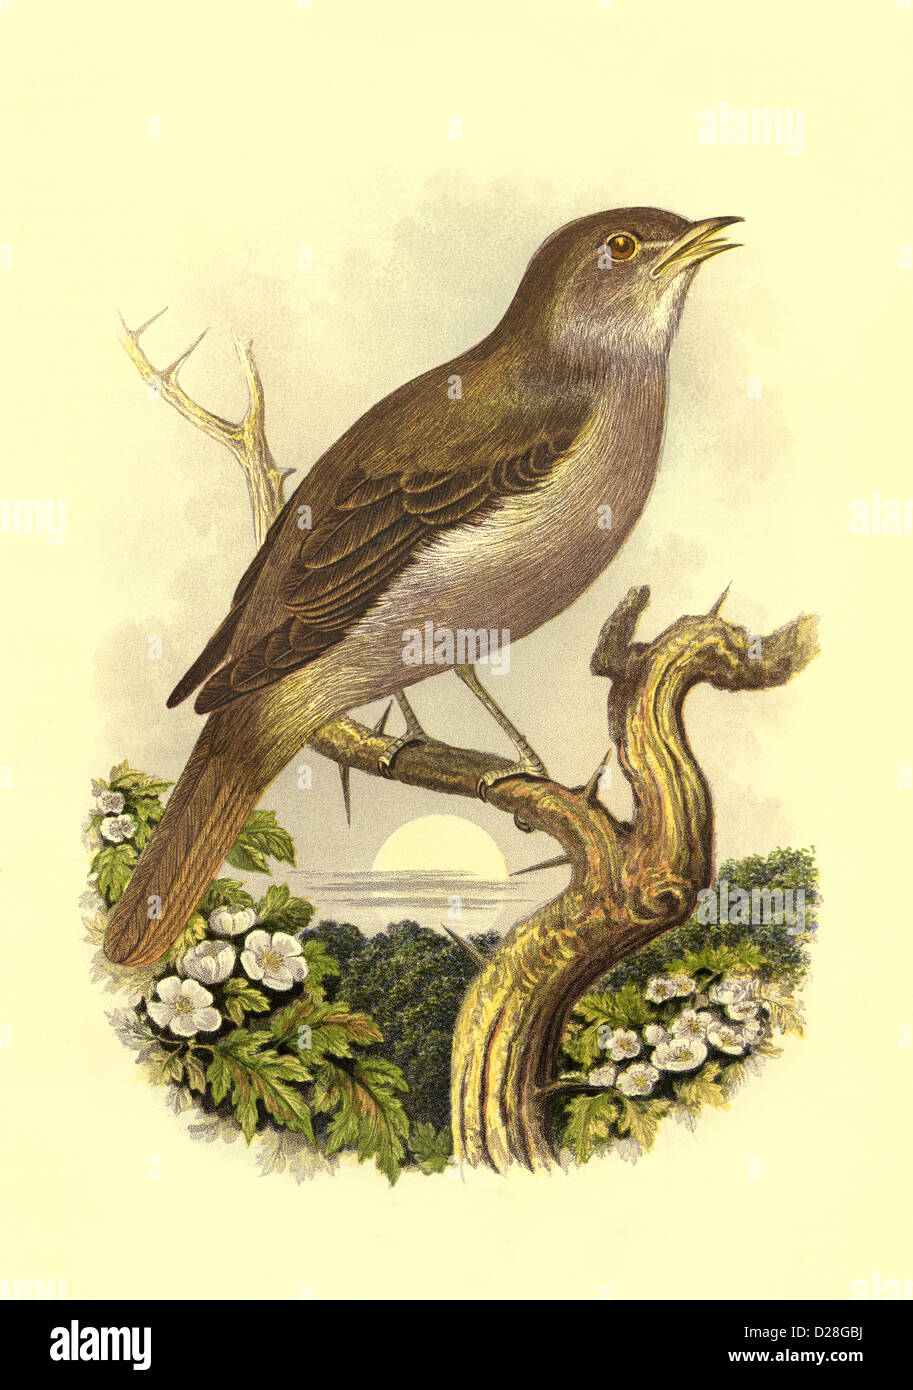 High resolution enhanced scan of antiquarian Victorian colour plate from 1860's Cassell's Book of Birds - Stock Image